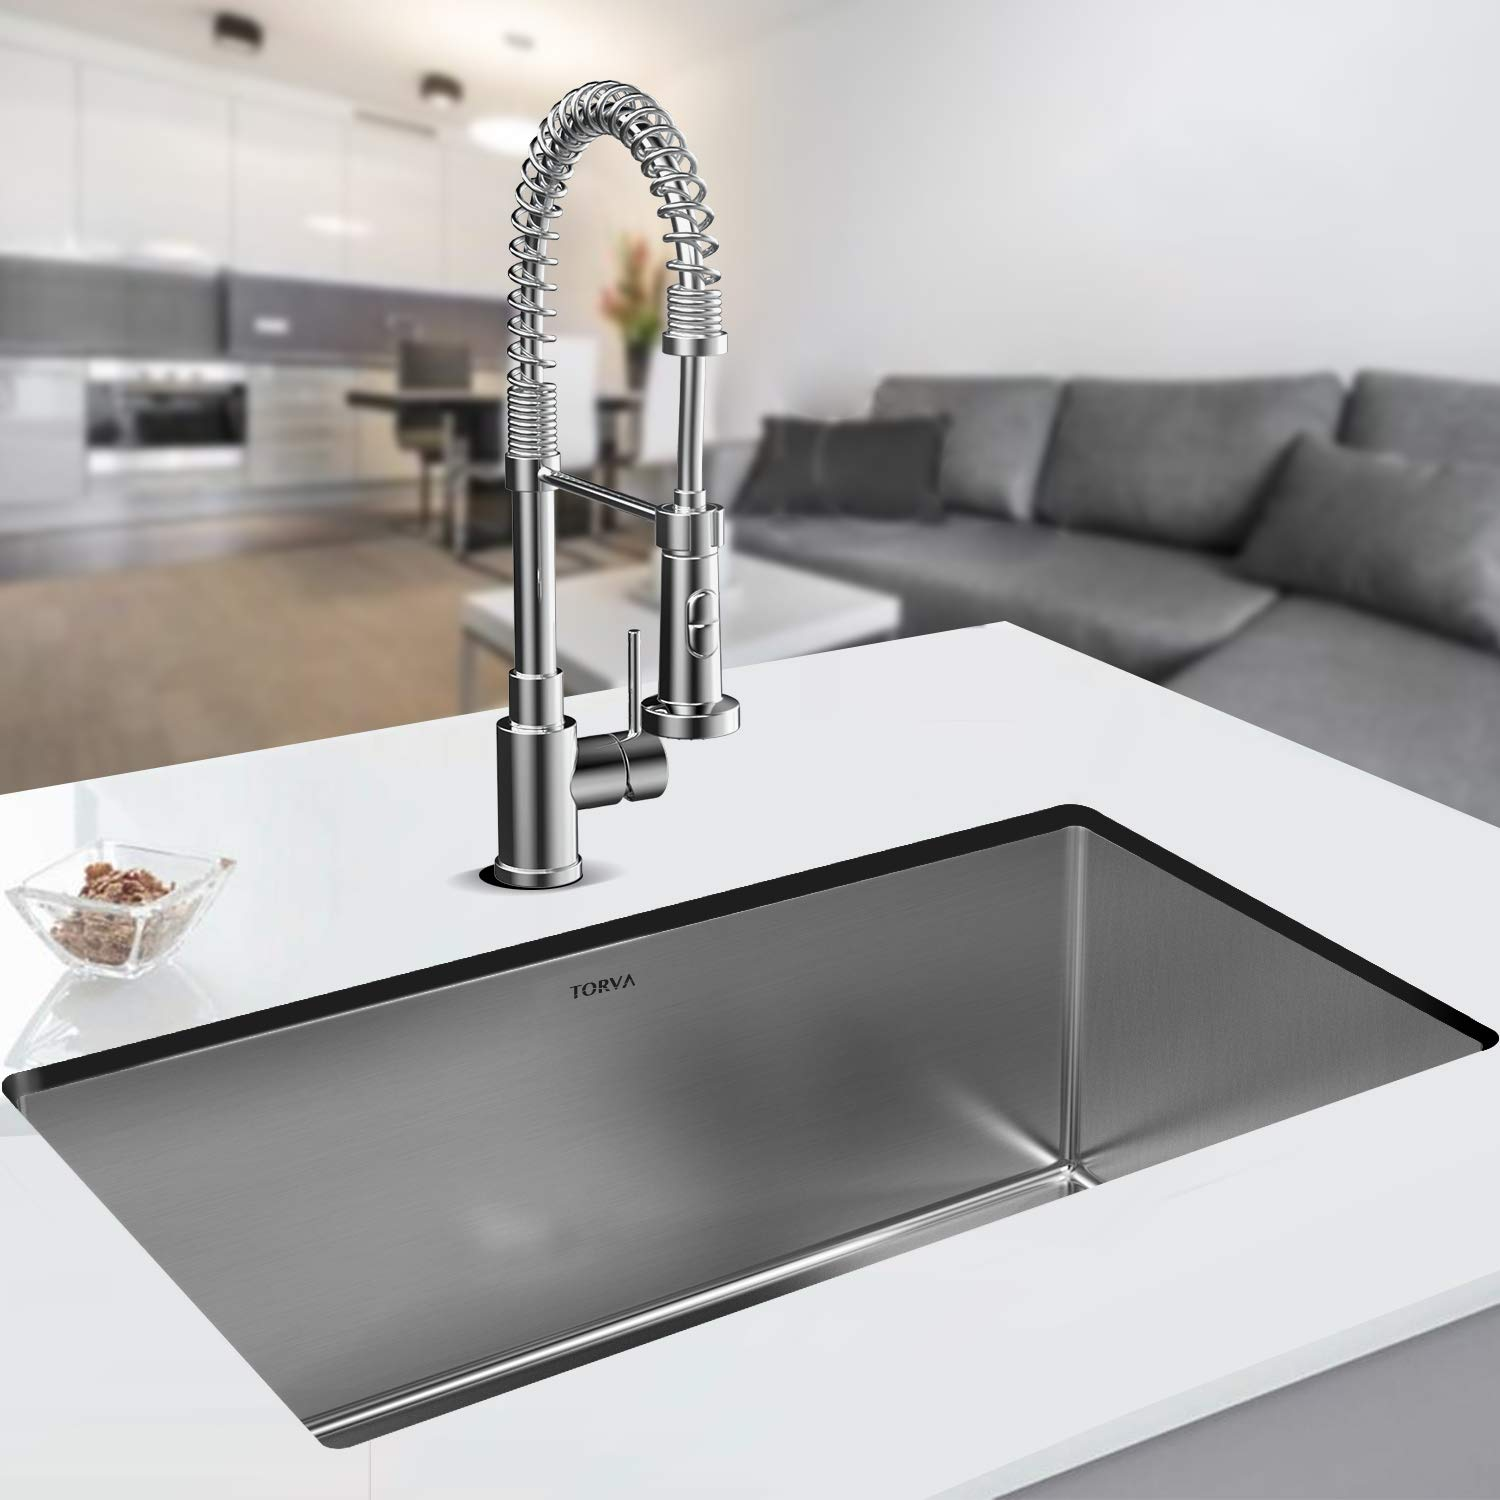 TORVA 30 Inch 16 Gauge Stainless Steel Undermount Kitchen Sink Single Bowl 10'' Deep by TORVA (Image #8)